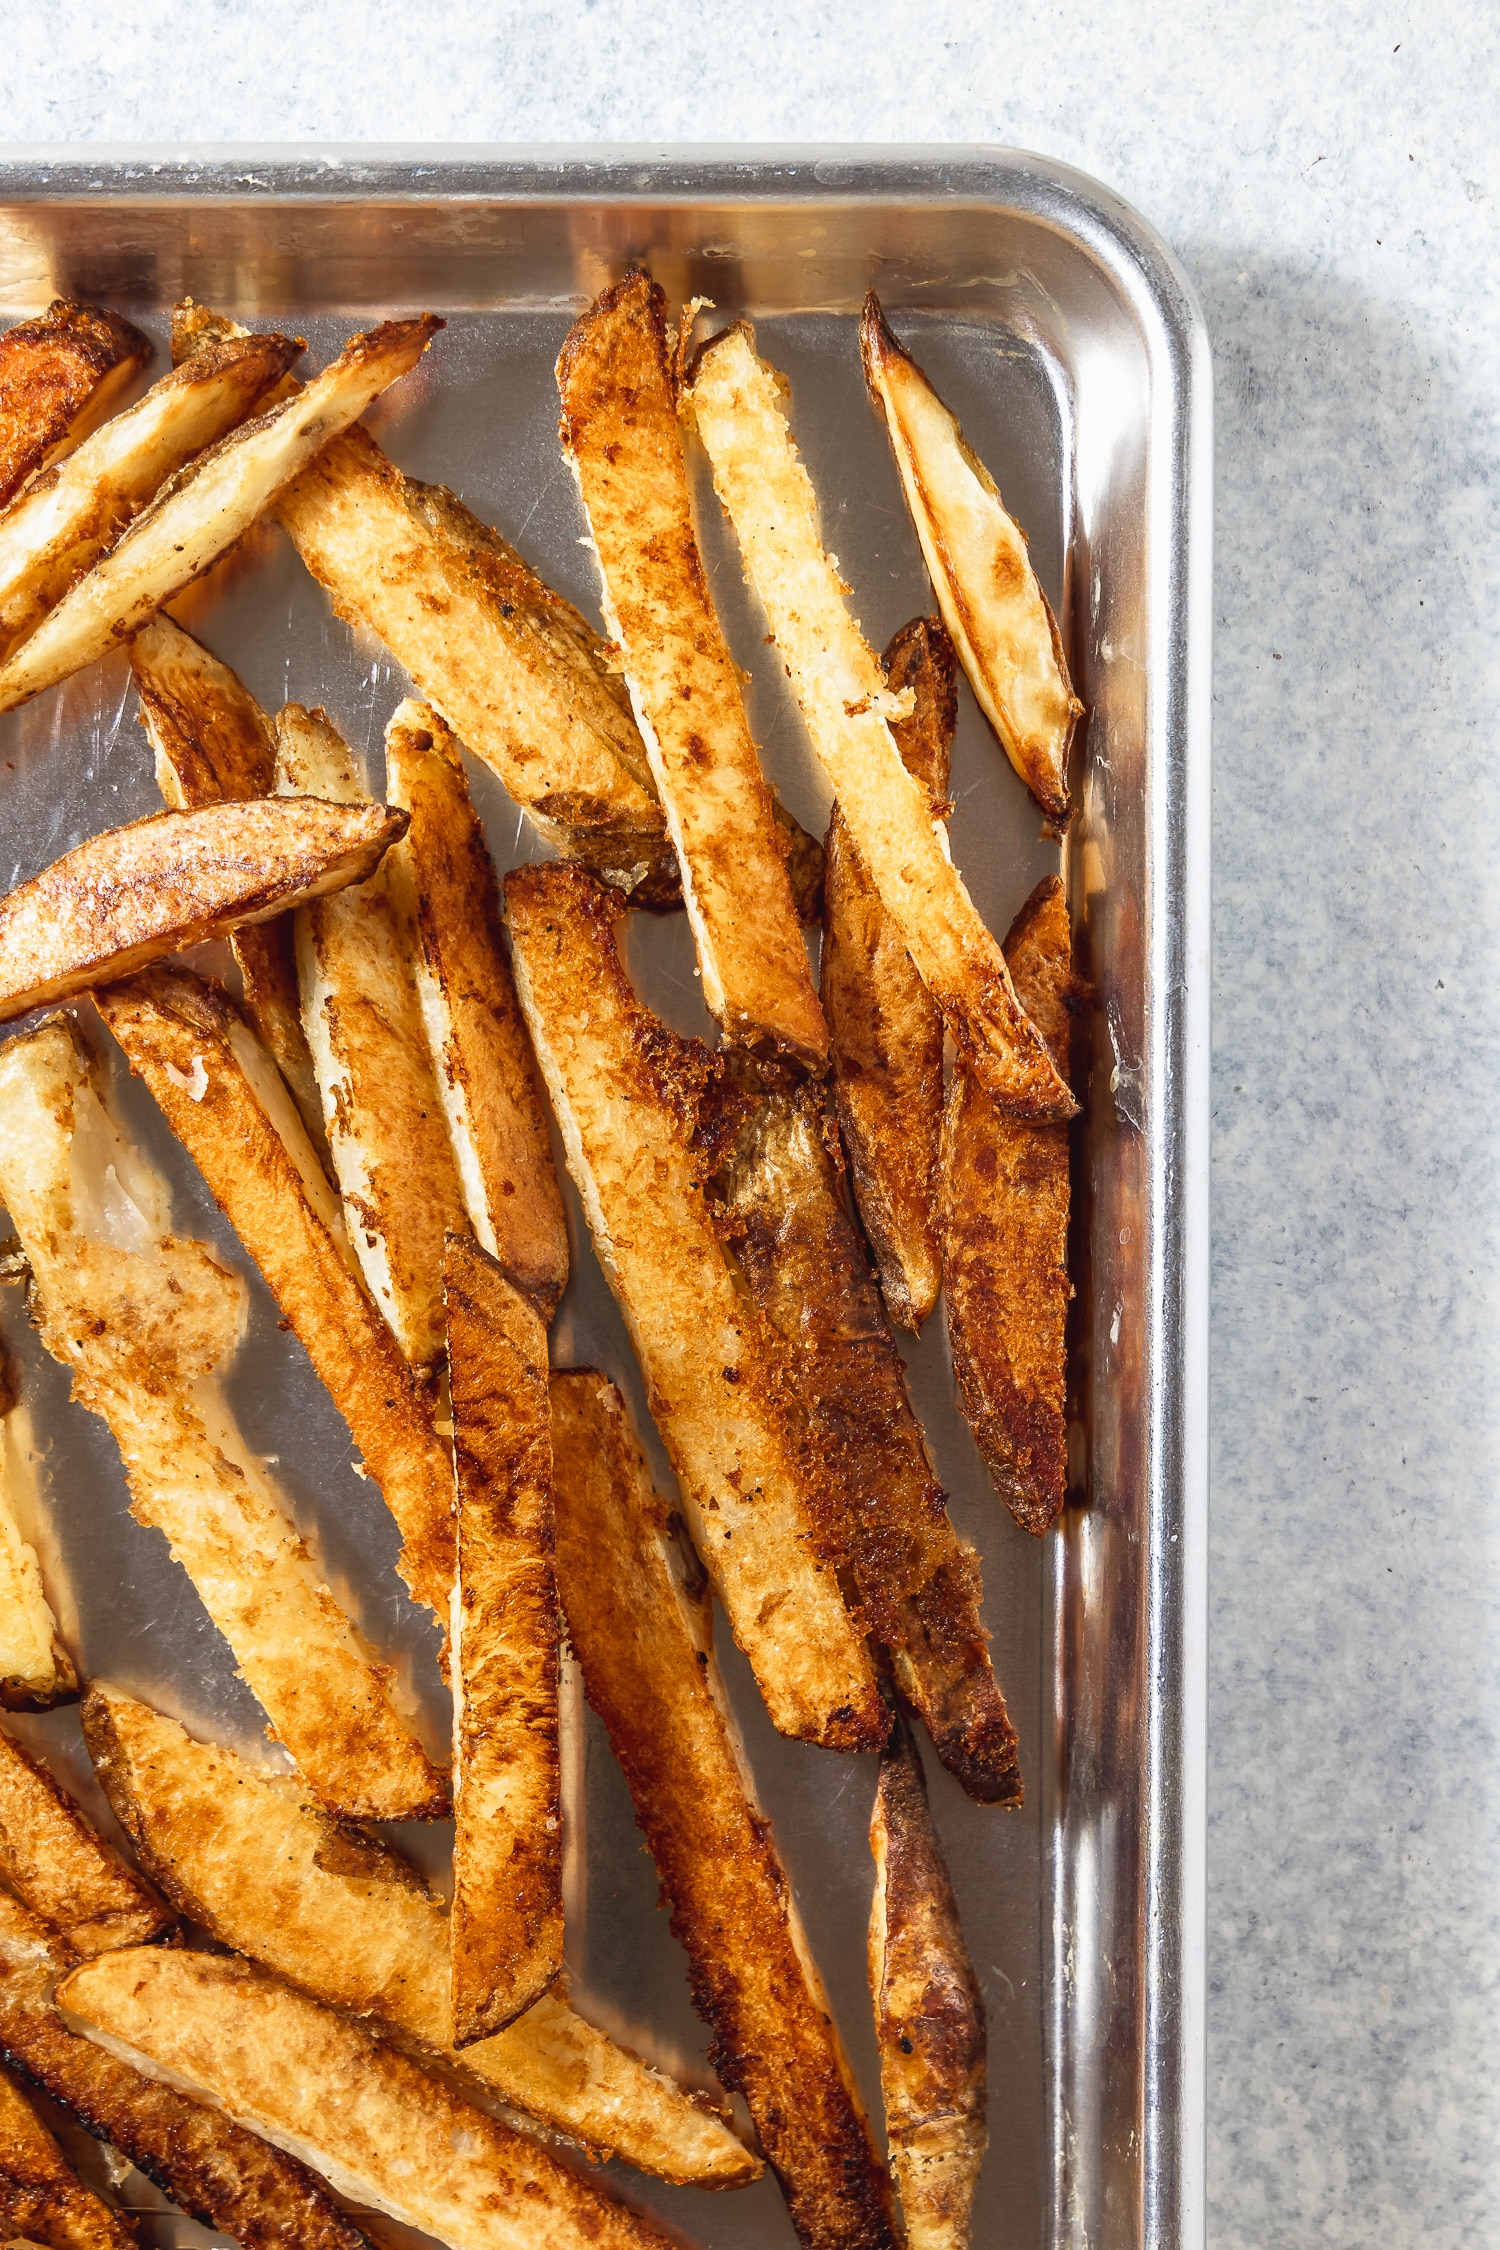 crispy oven fries on a sheet pan